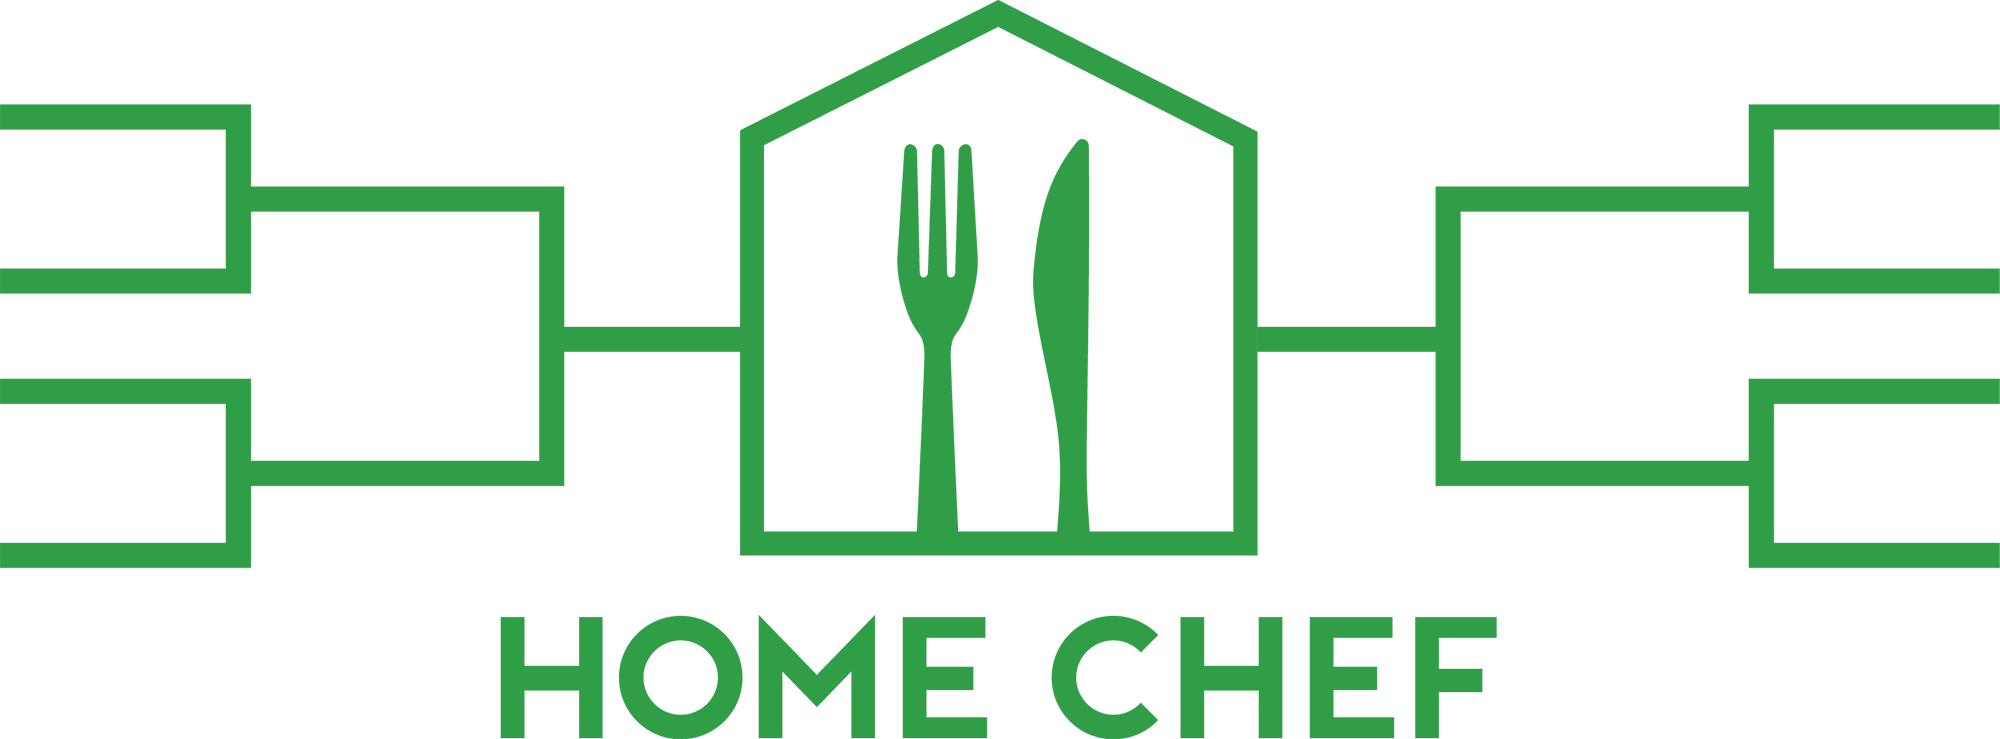 Home Chef Announces Move to New State-of-the-Art Production Center